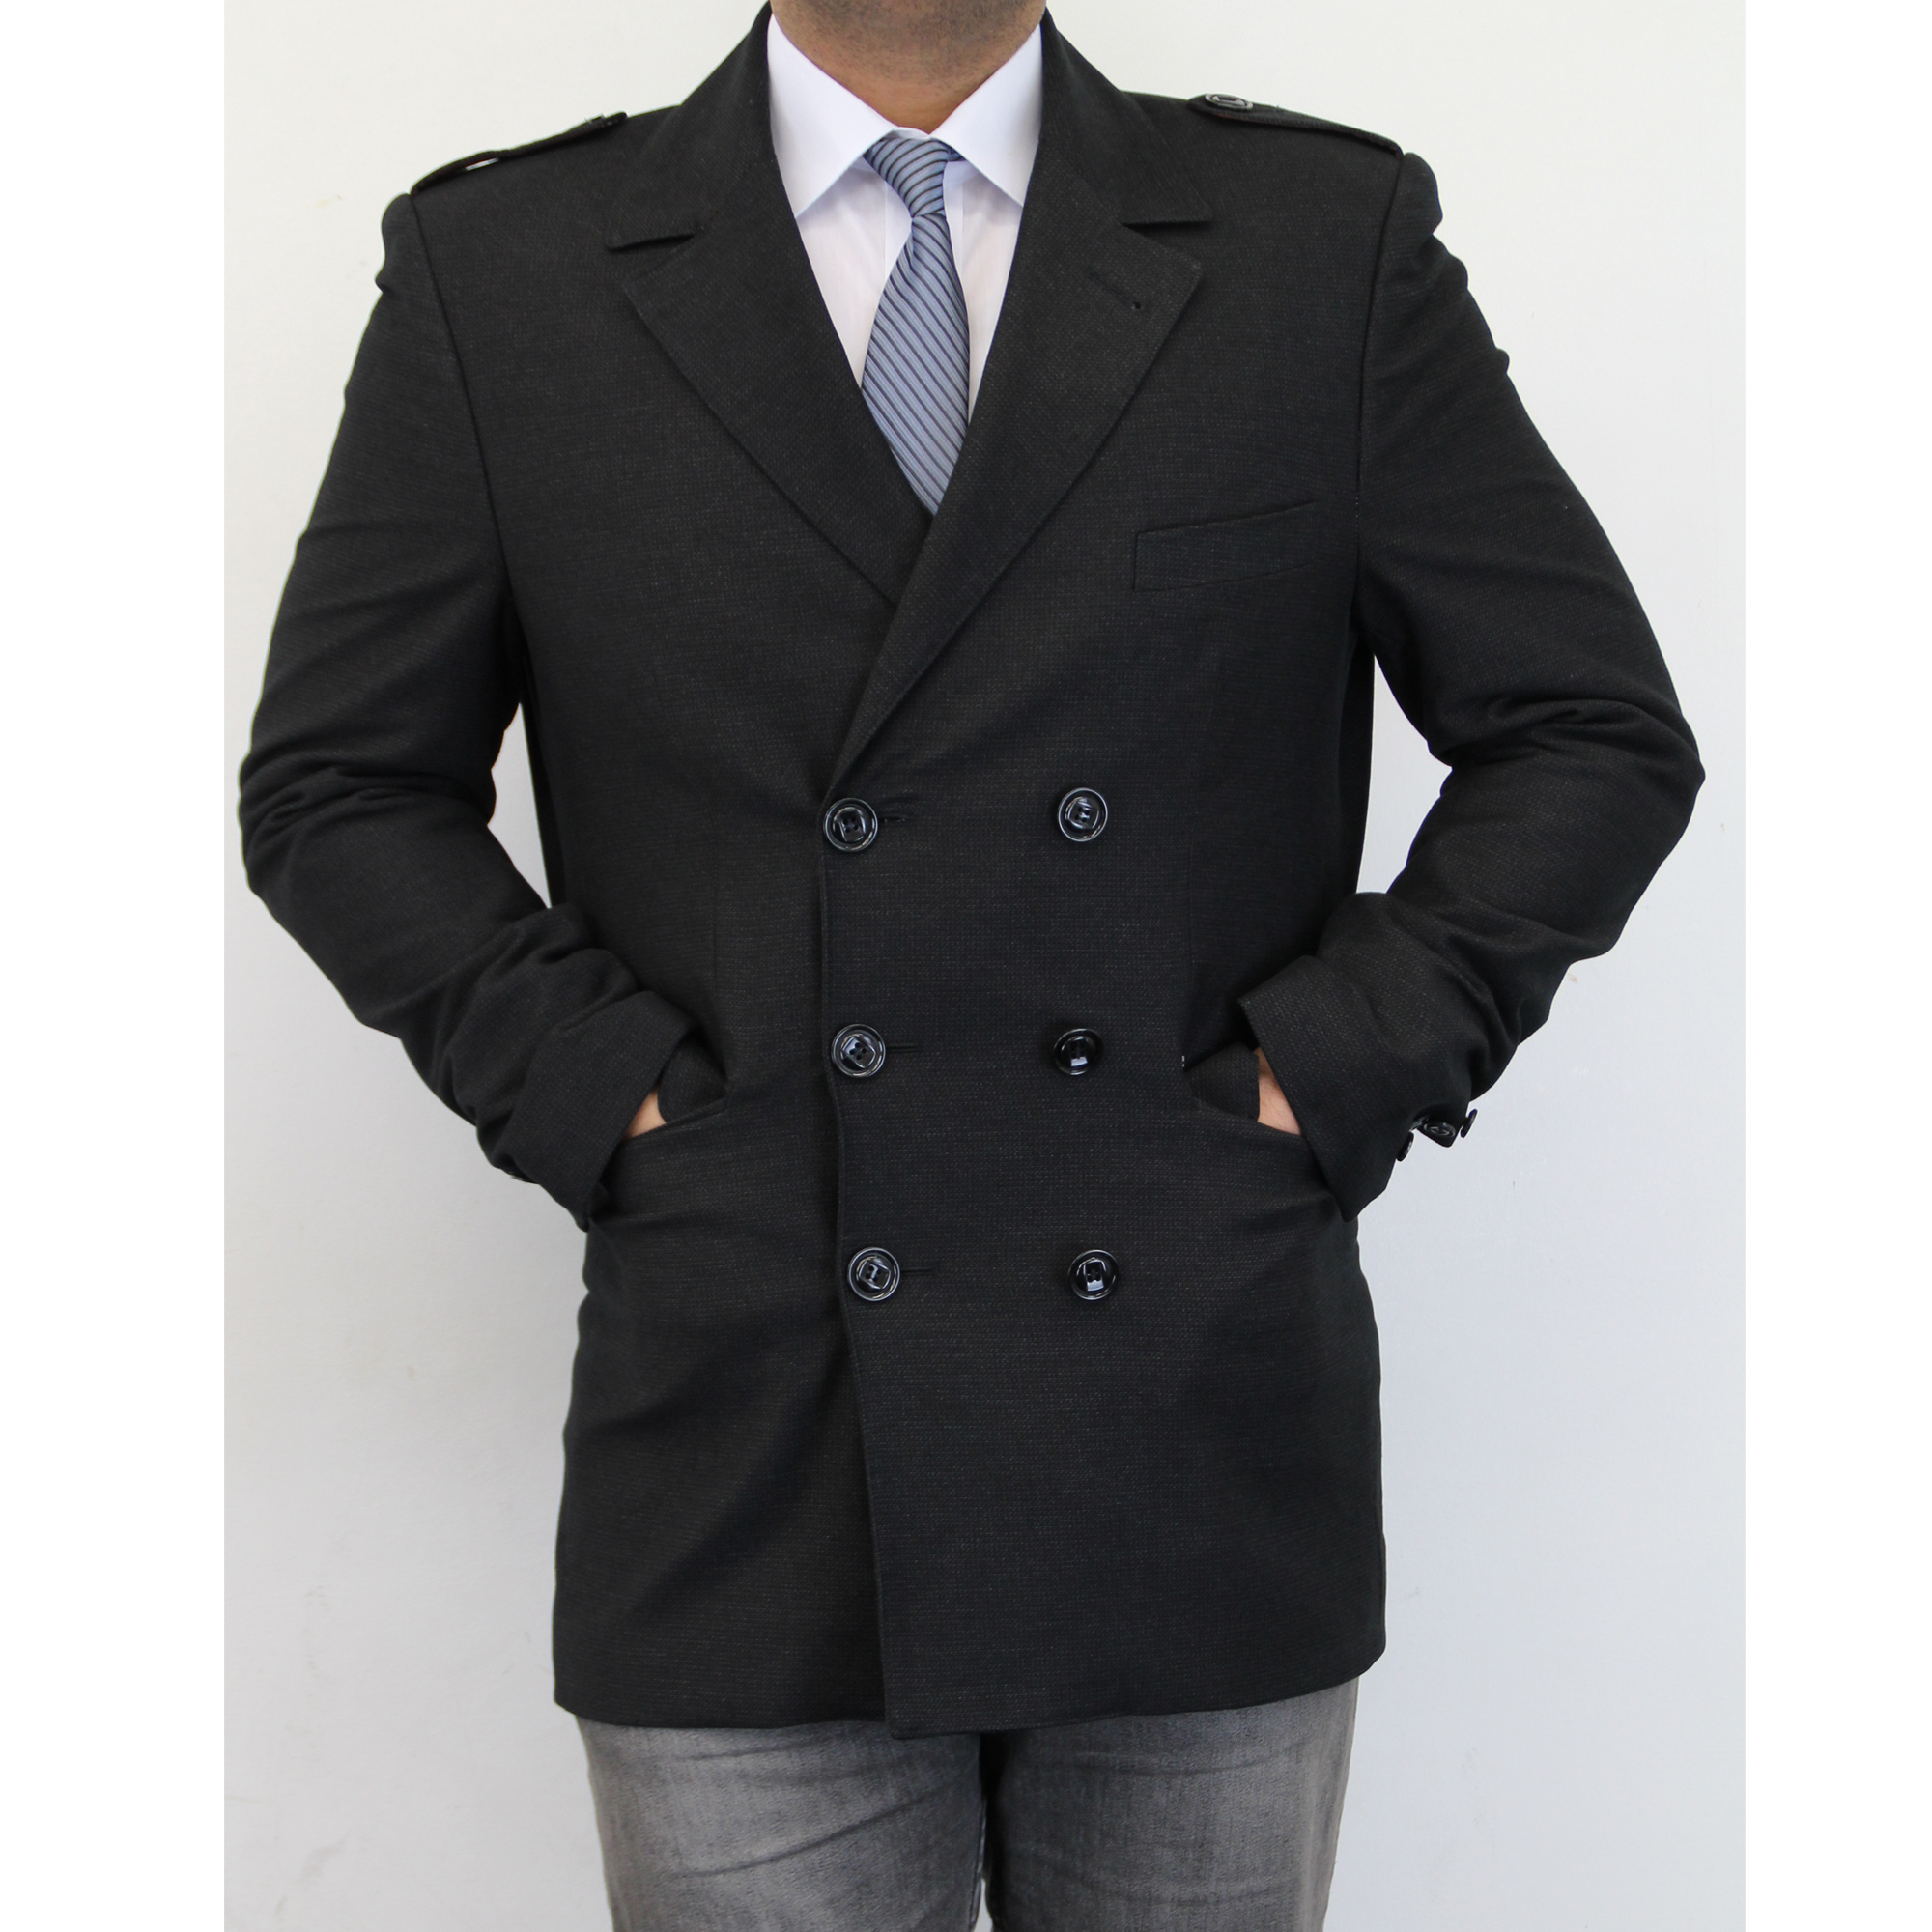 Find great deals on eBay for mens formal jackets. Shop with confidence.